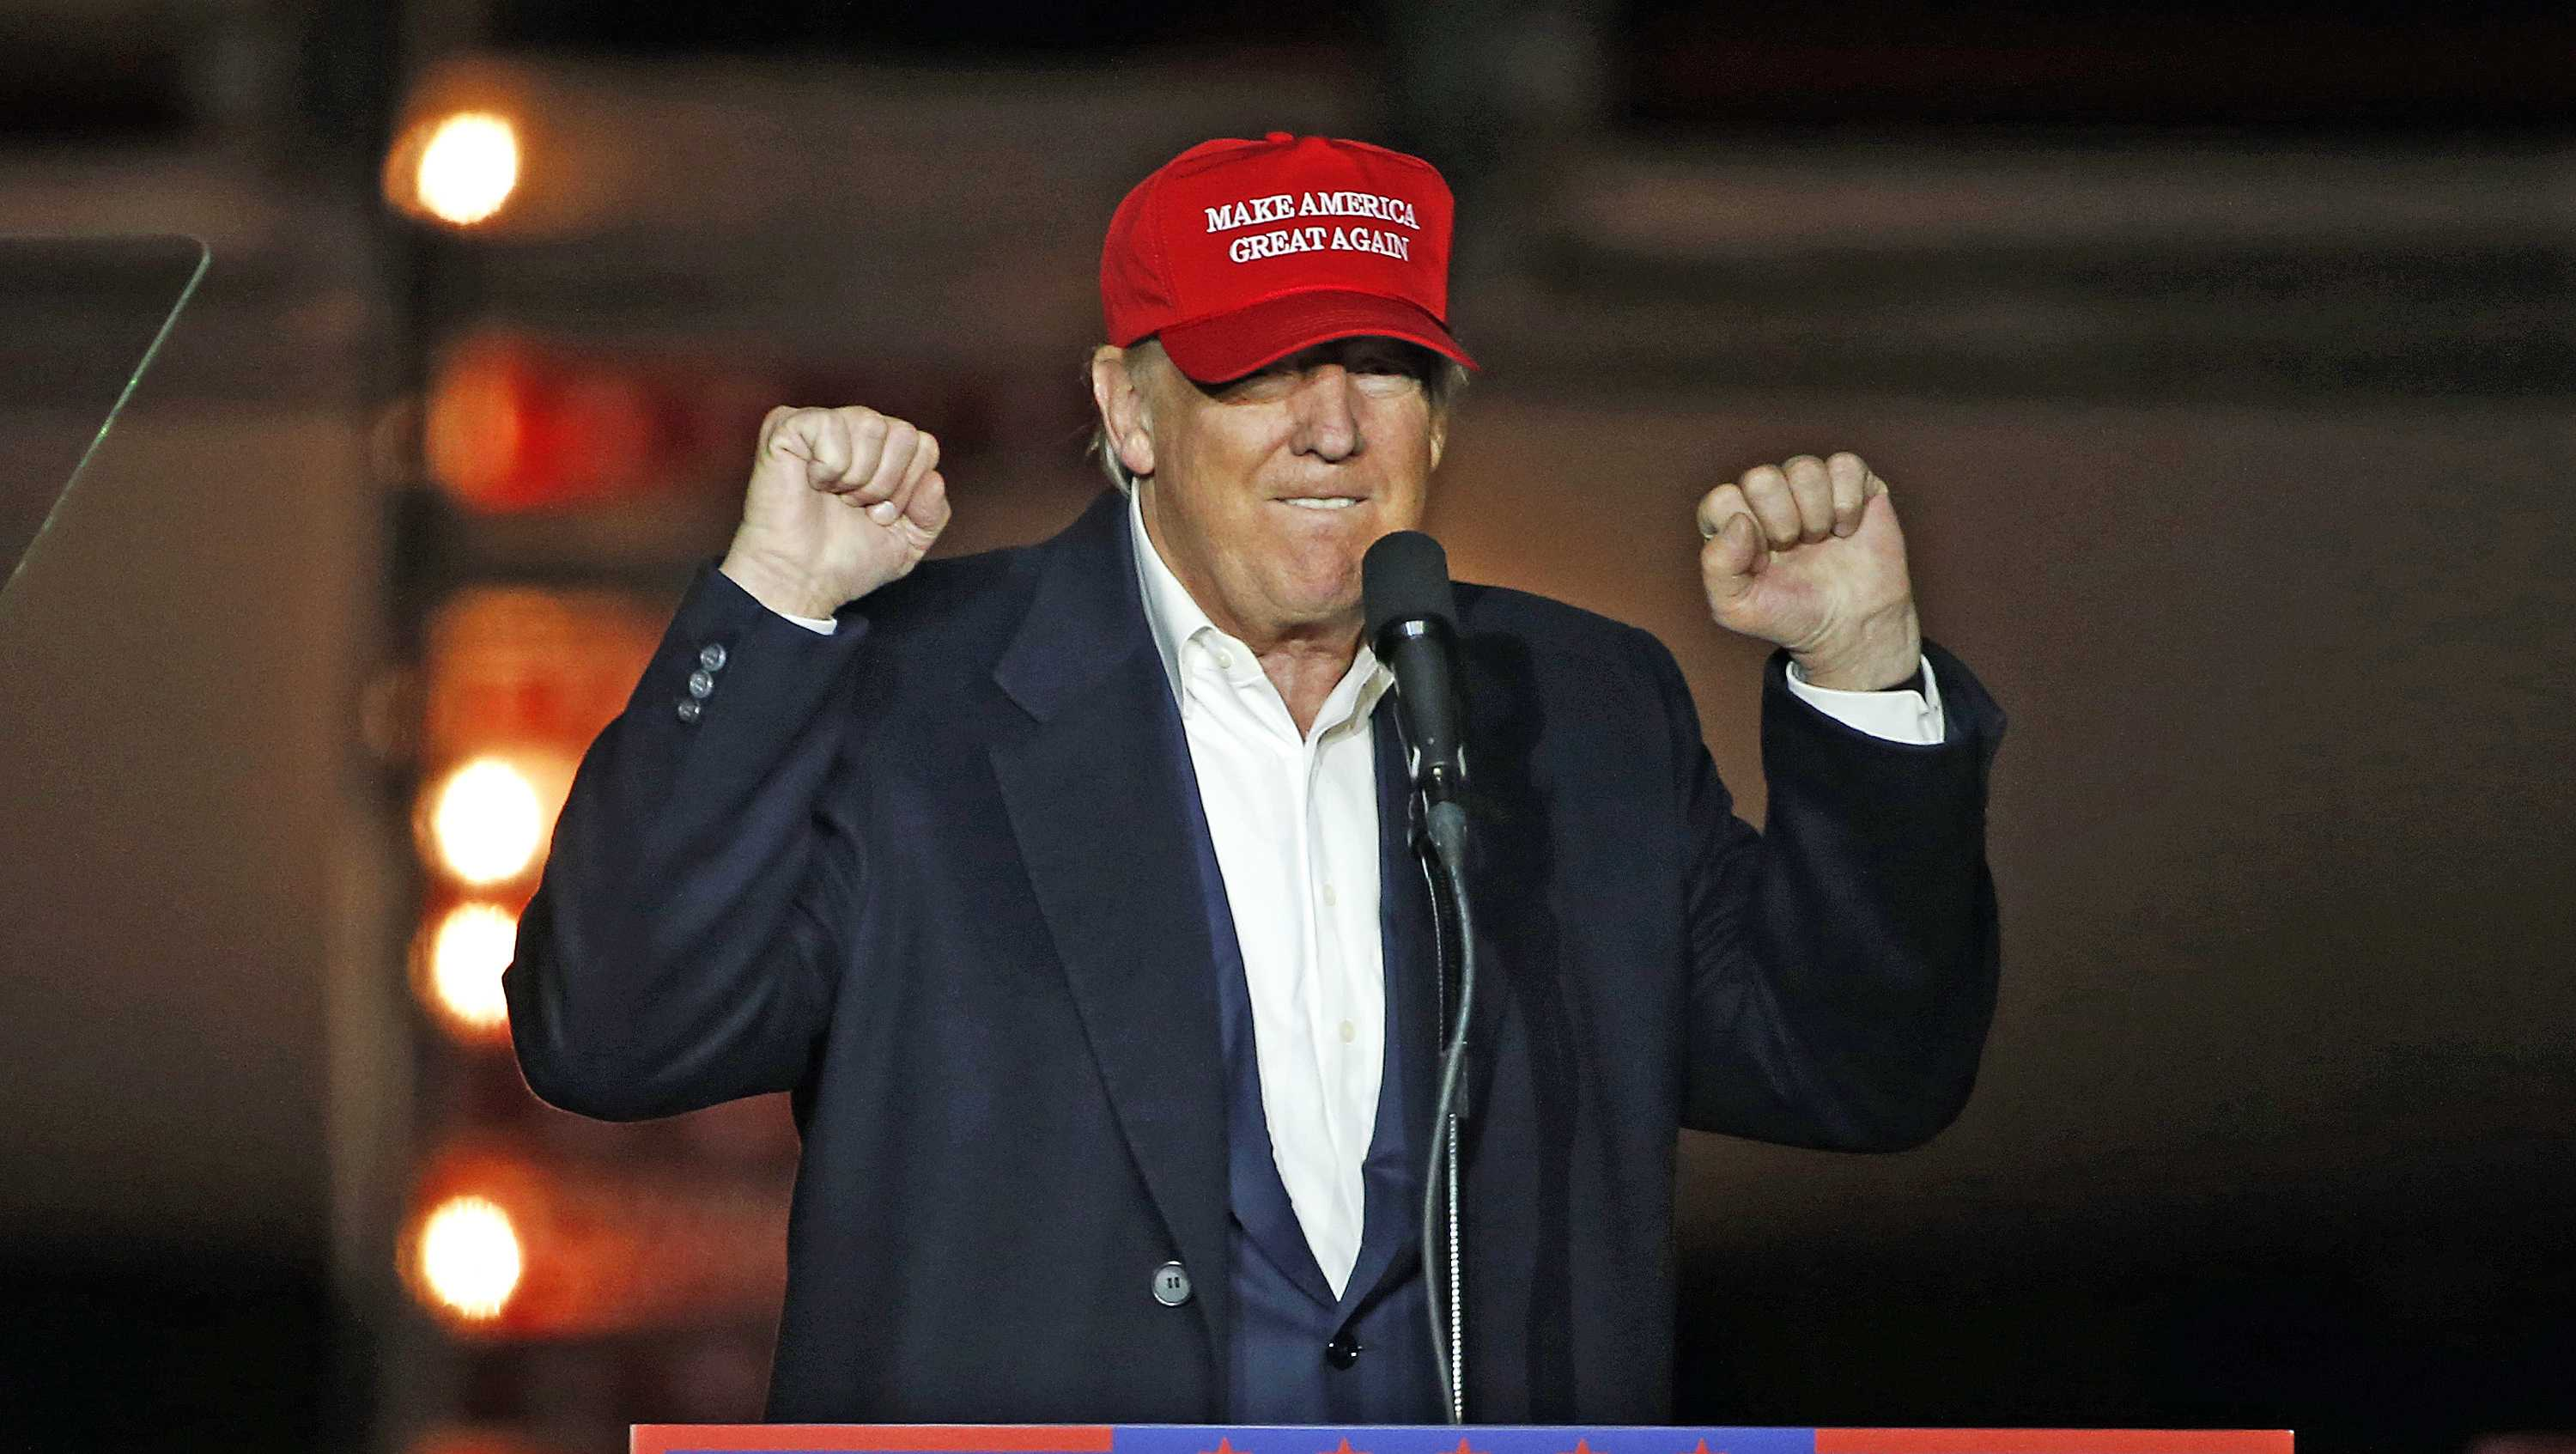 Republican presidential candidate Donald Trump speaks to a campaign rally, Monday, Nov. 7, 2016, in Manchester, N.H.